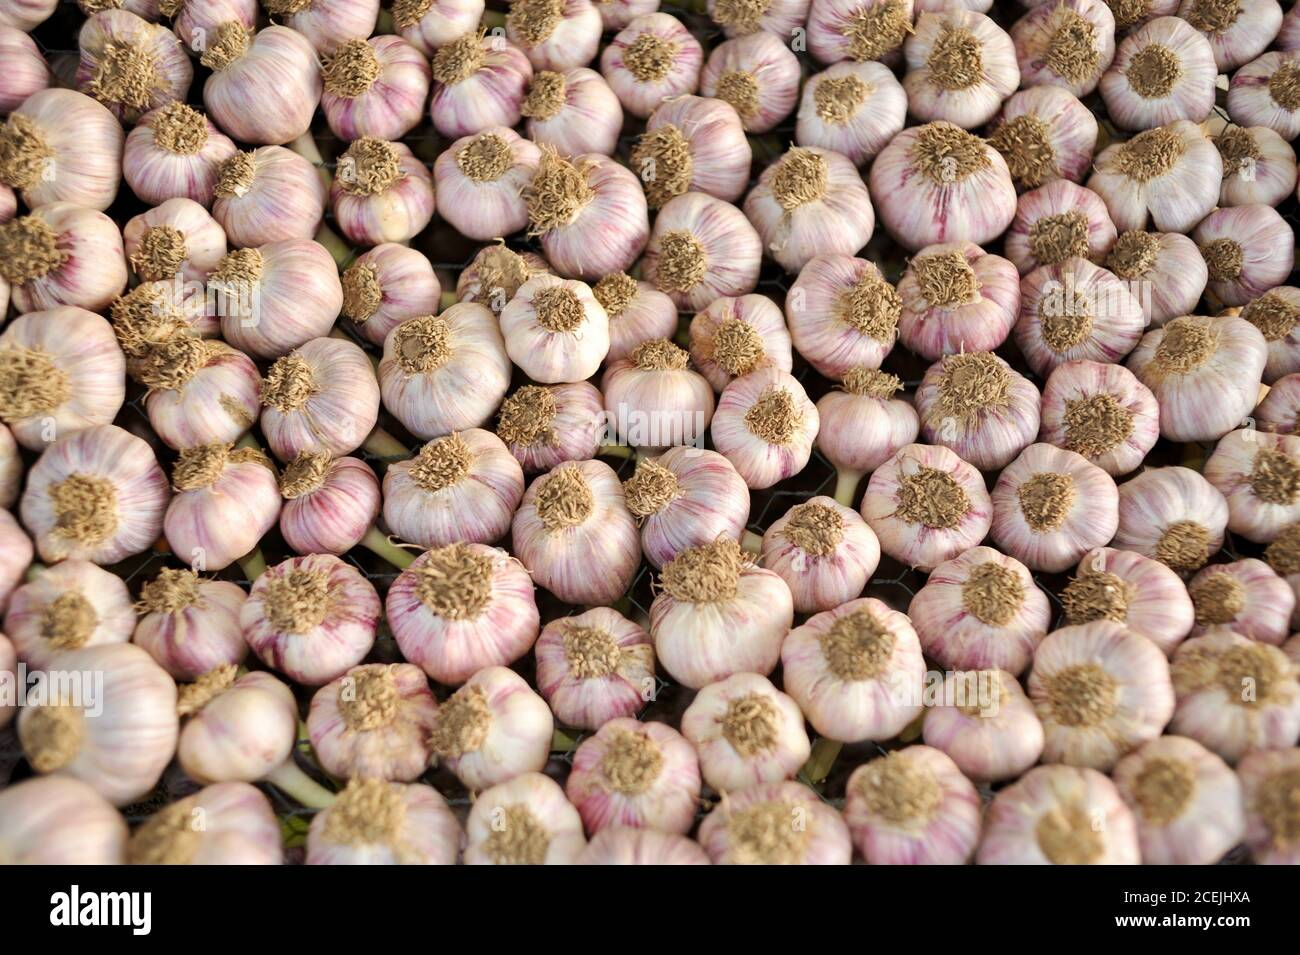 Freshly picked, organic, natural garlic bulbs curing and drying on racks at a small farm outside Hillsboro, Wisconsin, USA Stock Photo